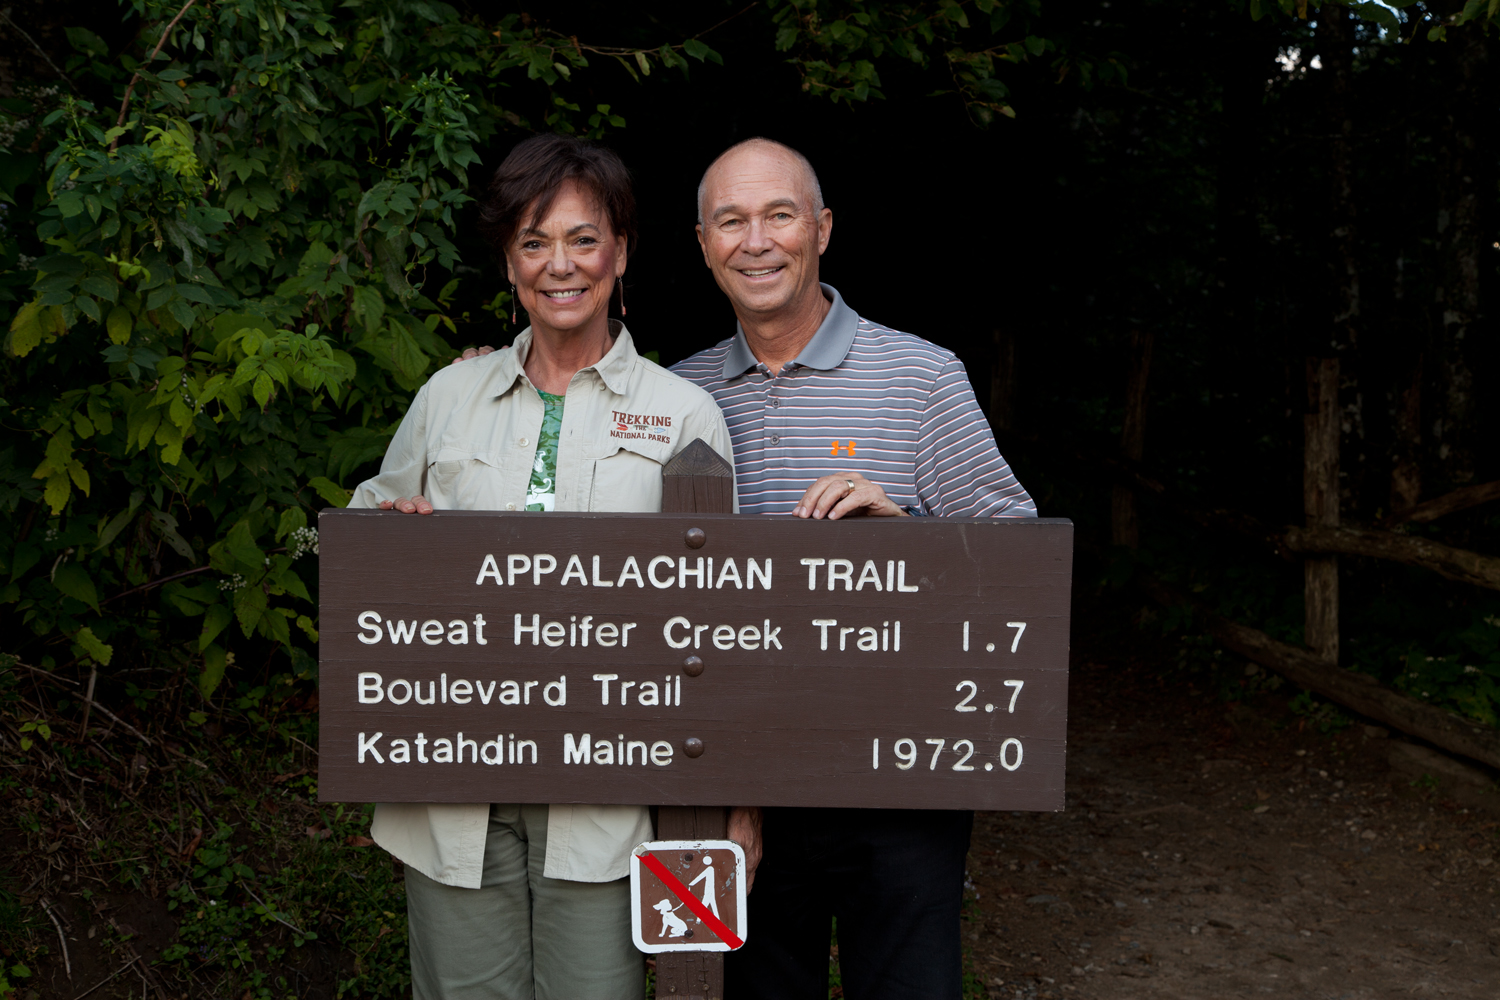 Trekking a portion of the Appalachian Trail during our visit to park  #45 .